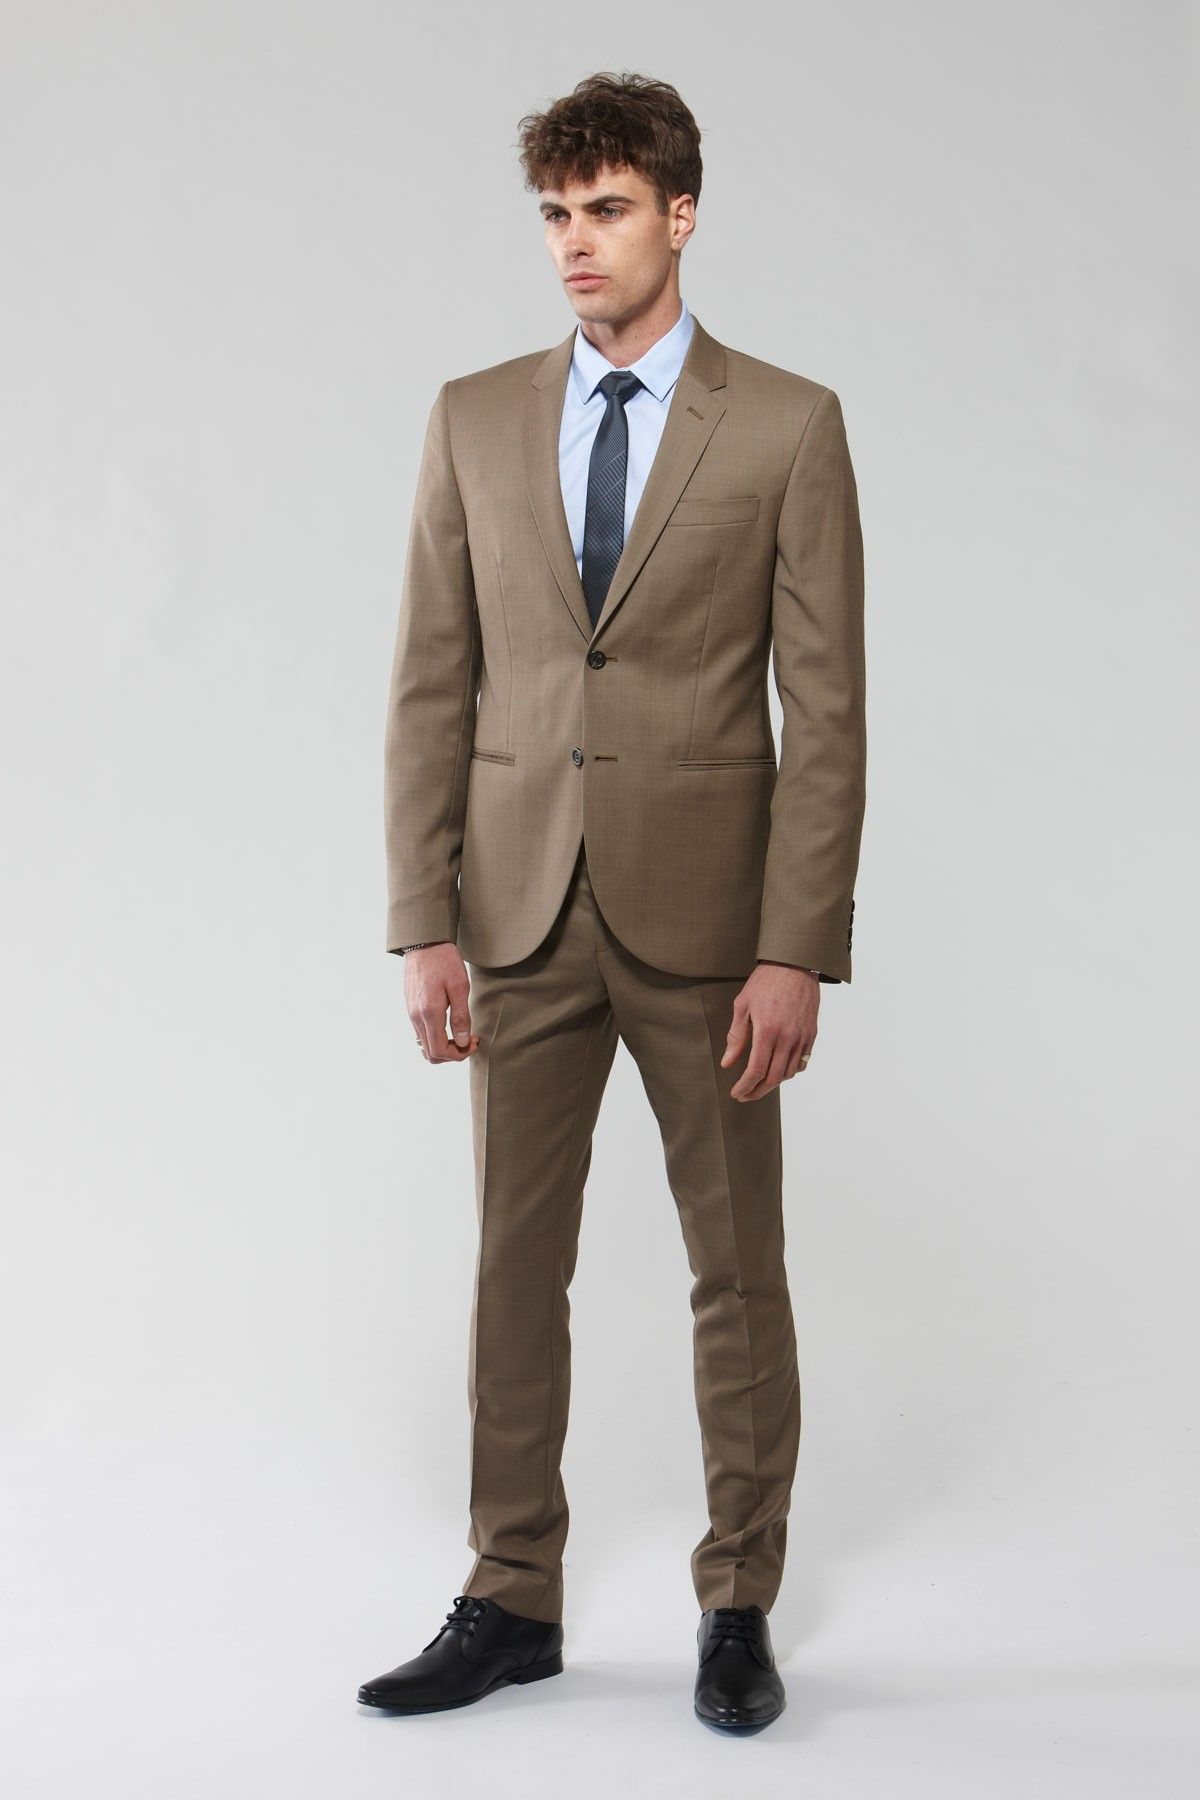 Suits Color Combination Prepossessing Apparently Black Shoes Could Work In  This Combination Too Suit . Inspiration